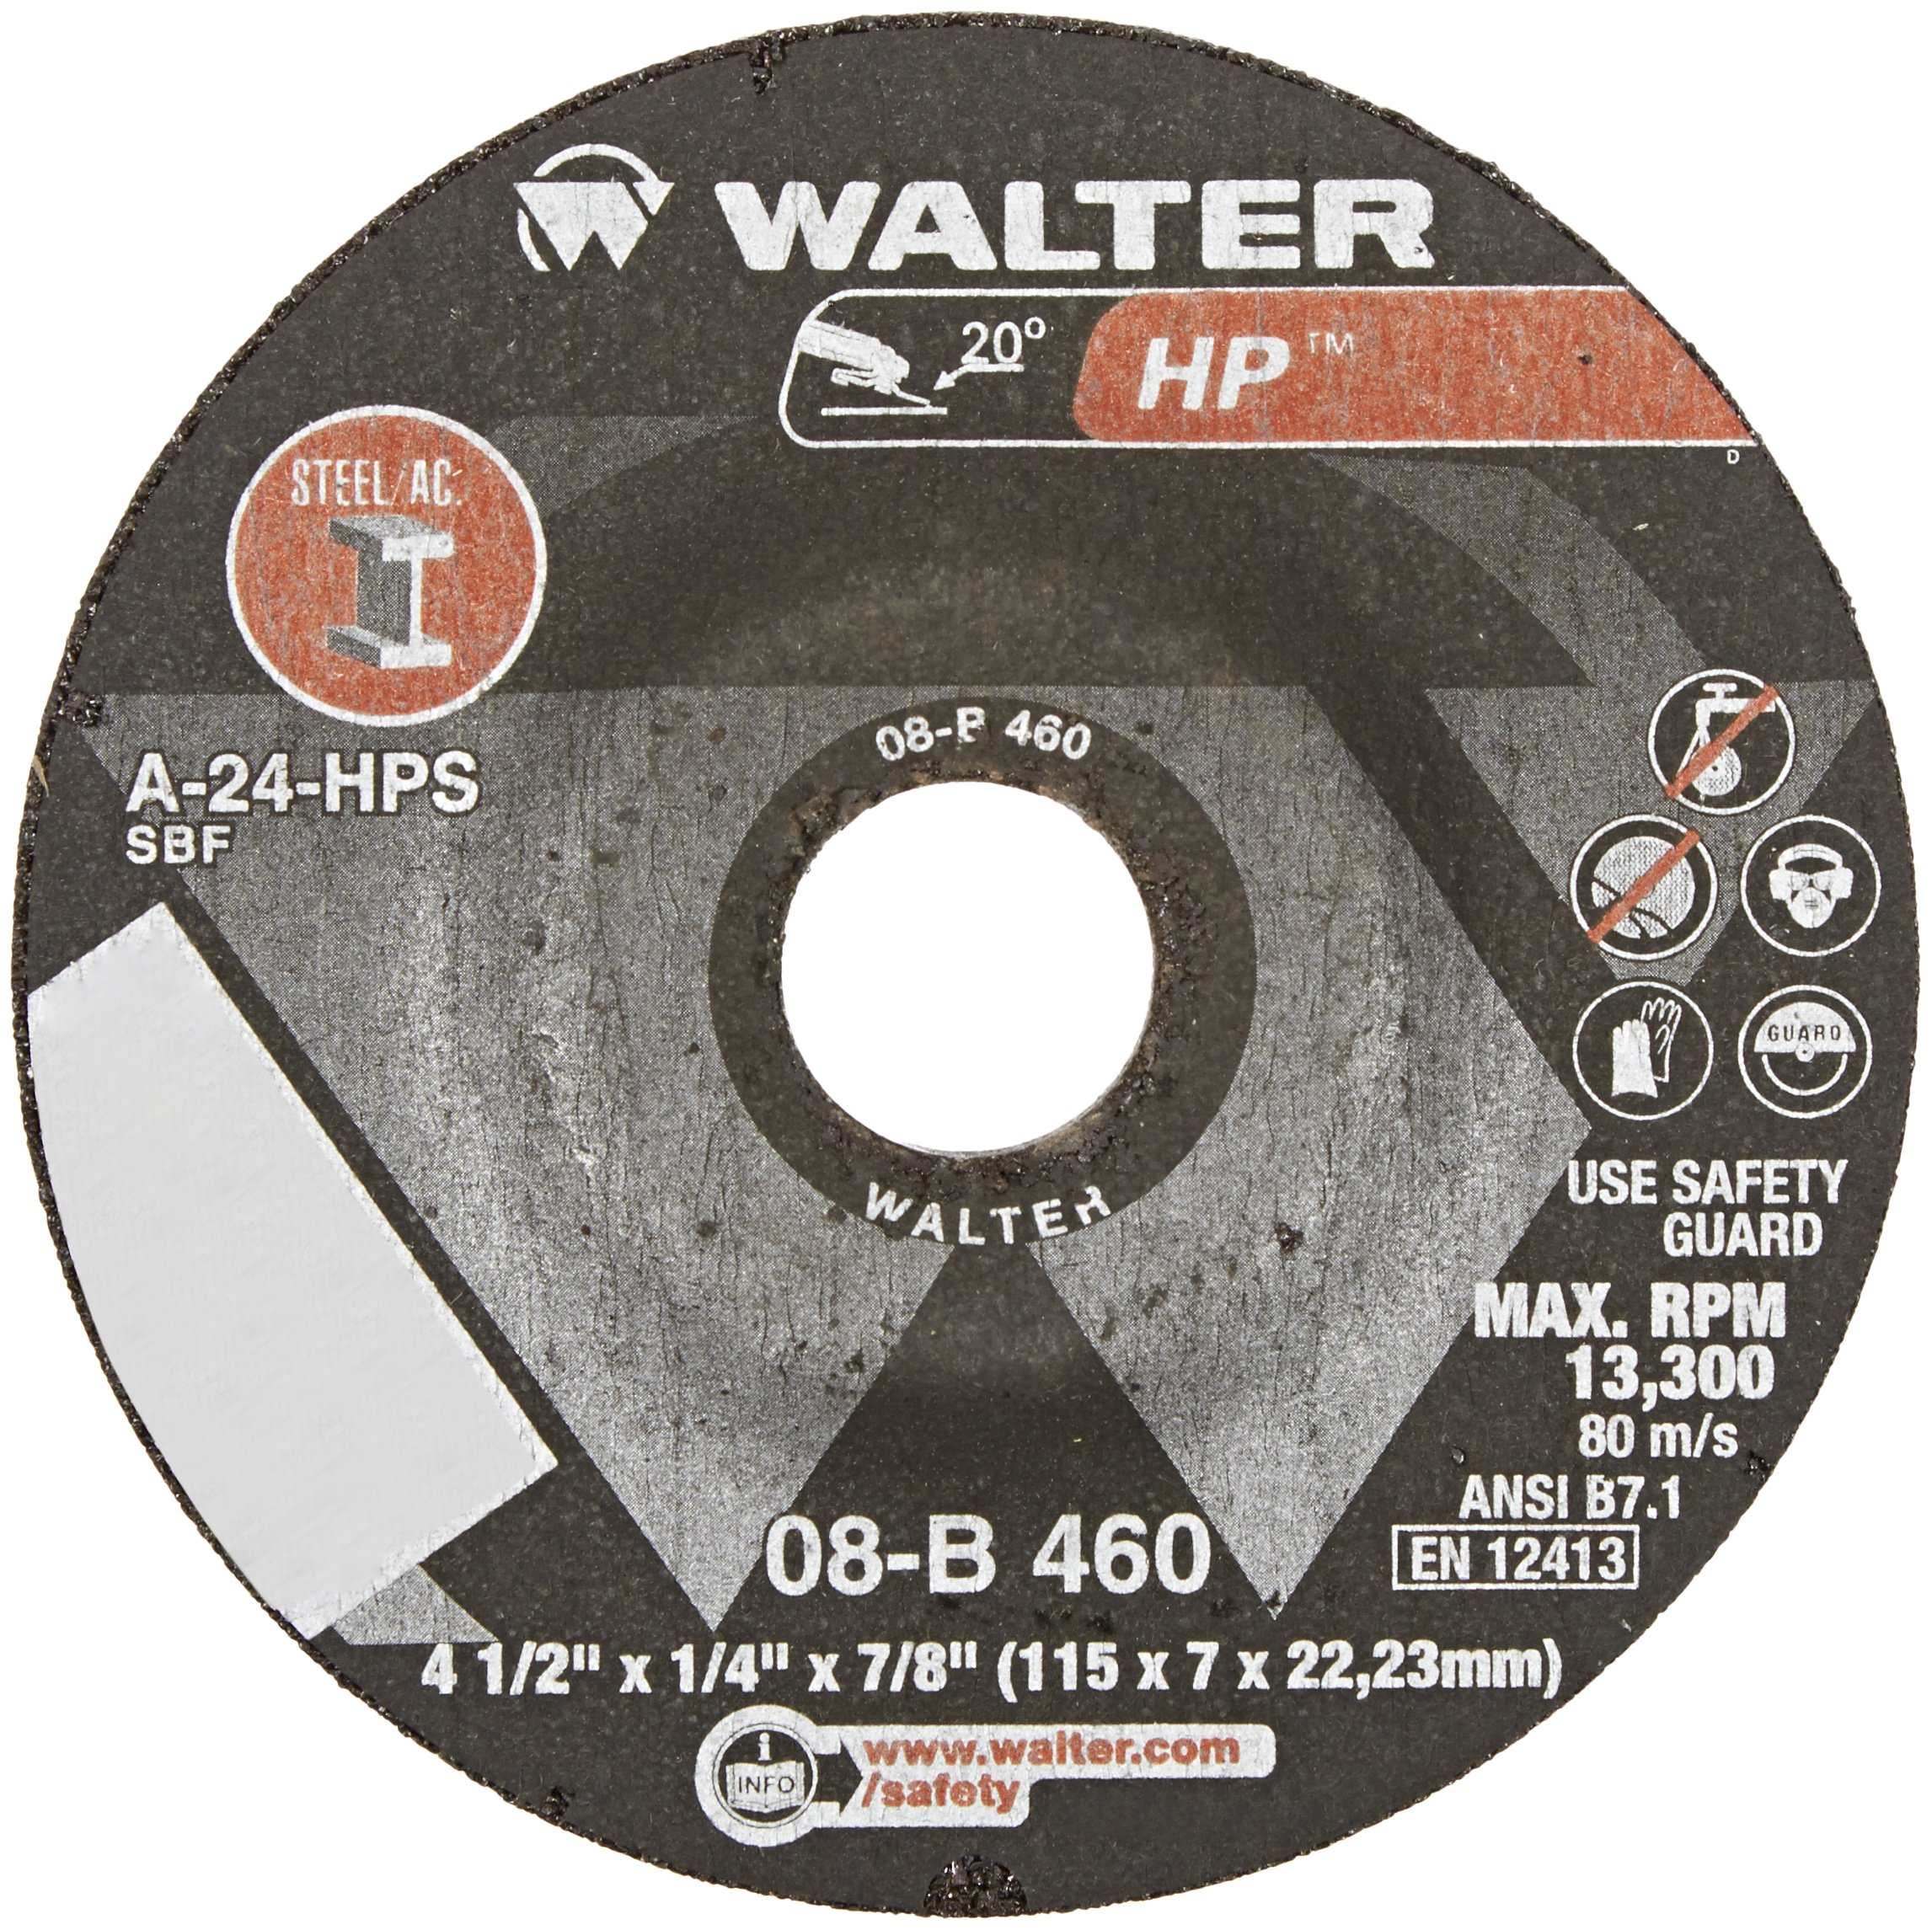 Walter HP Grinding Wheel, Type 27, Round Hole, Aluminum Oxide, 4-1/2'' Diameter, 1/4'' Thick, 7/8'' Arbor, Grit A-24-HPS (Pack of 25) by Walter Surface Technologies (Image #2)